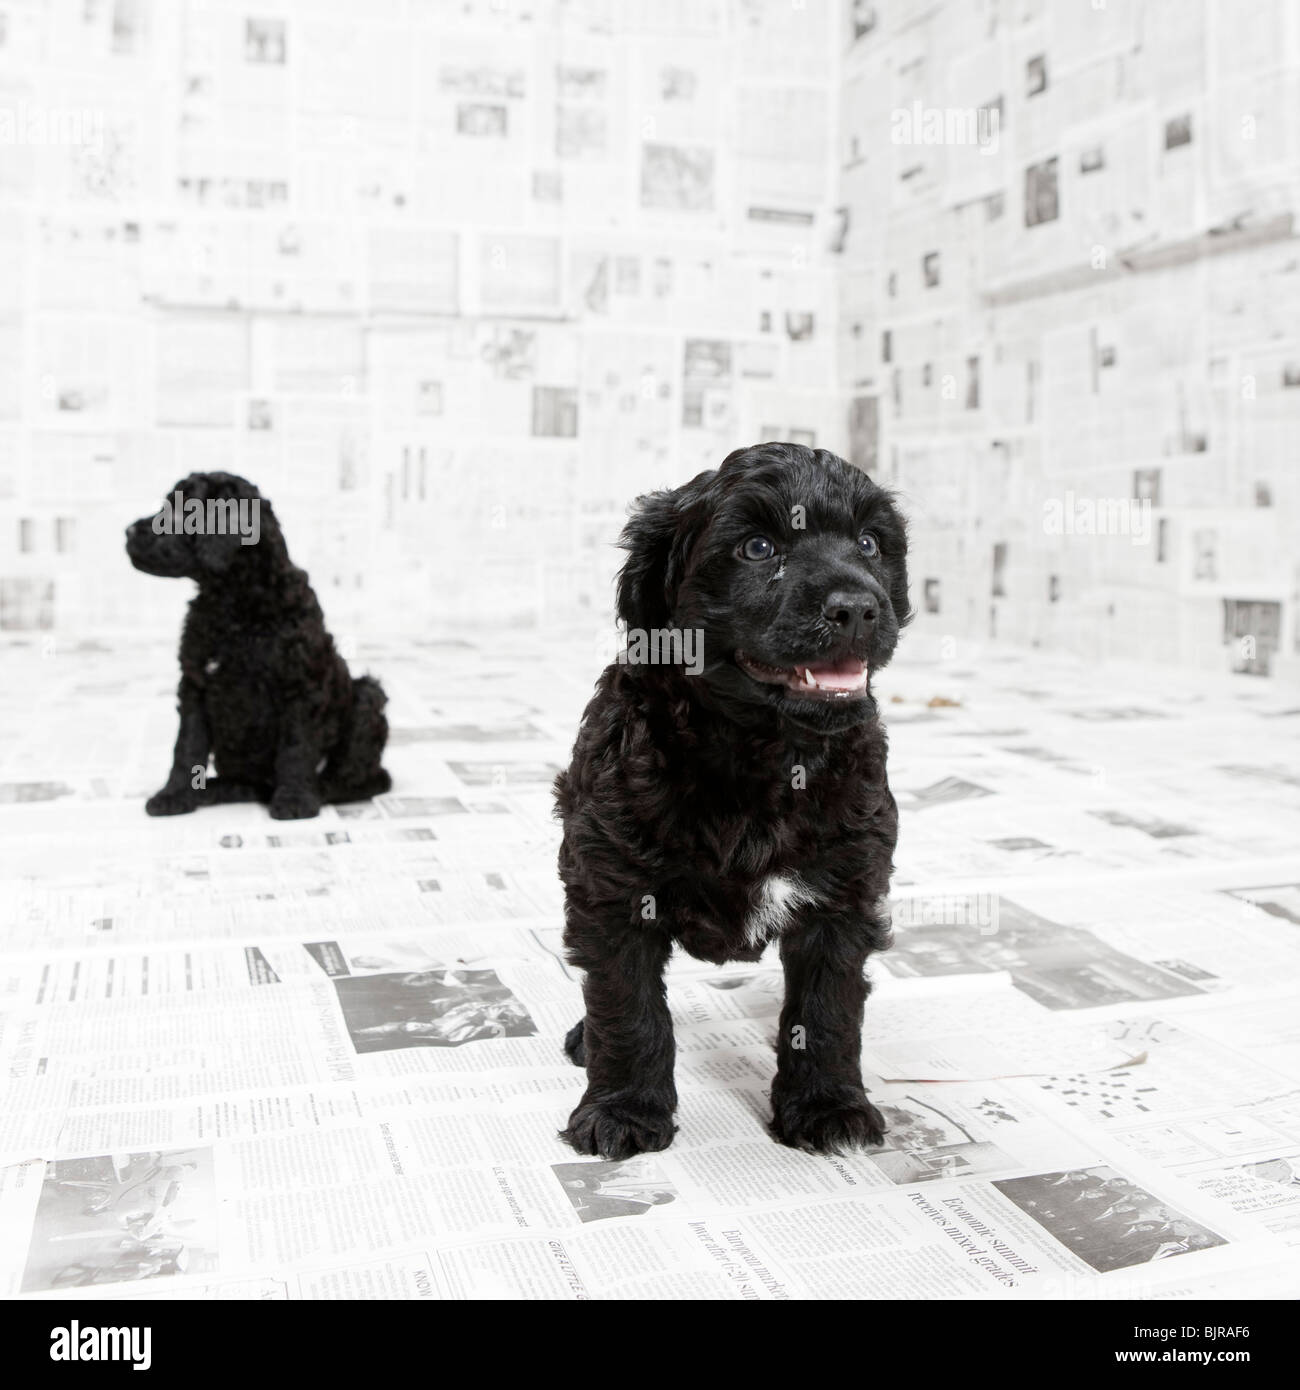 Two Portuguese Water Dog puppies in a room covered in newspaper - Stock Image